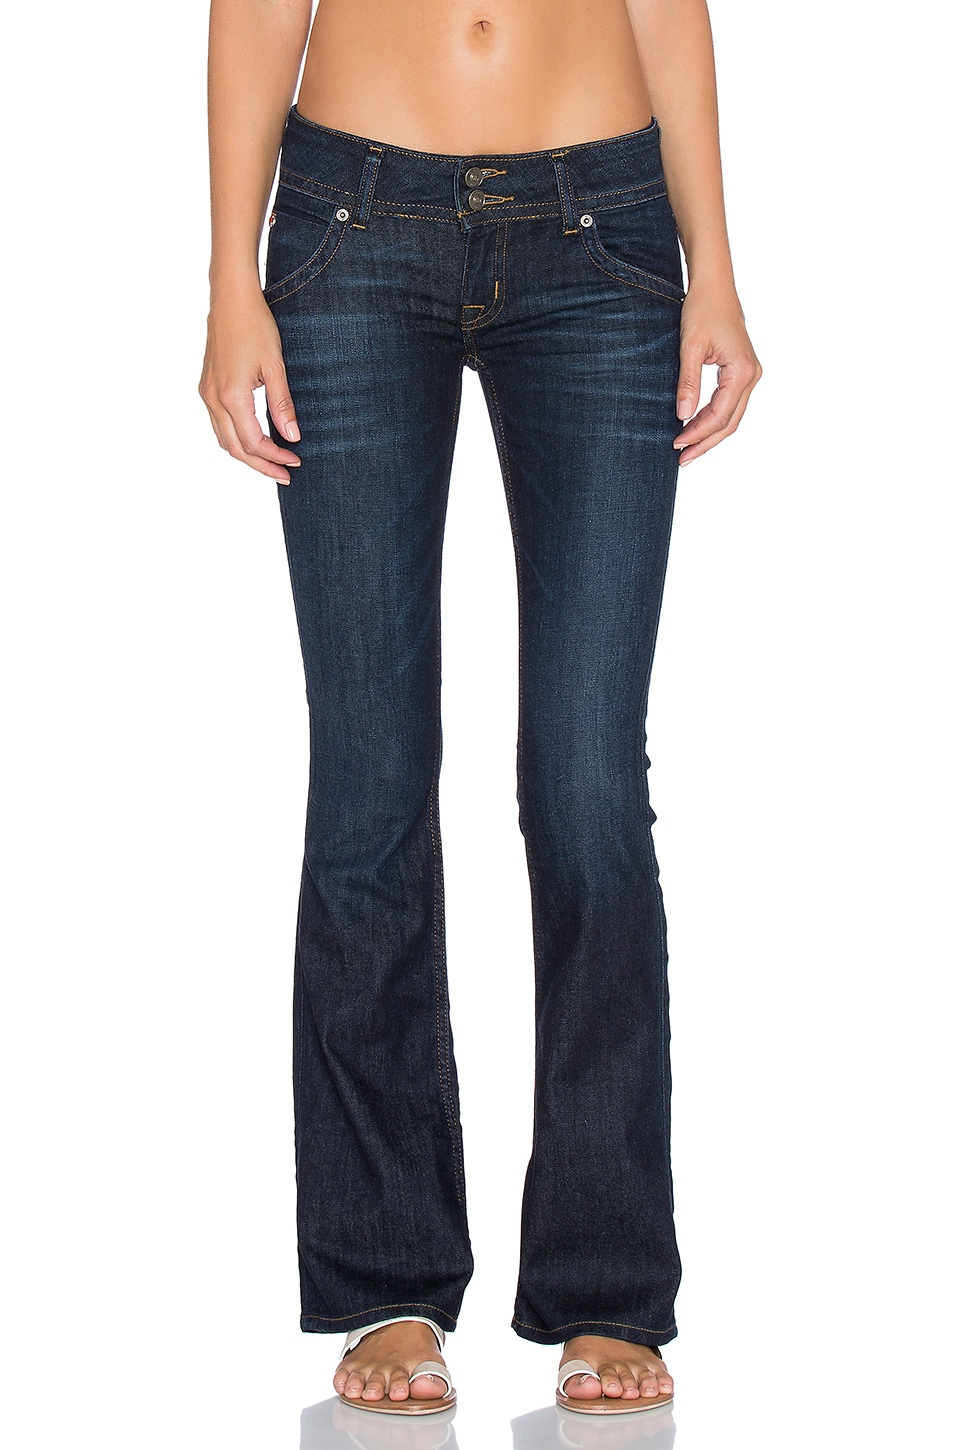 Hudson Jeans Signature Petite Boot in Firefly